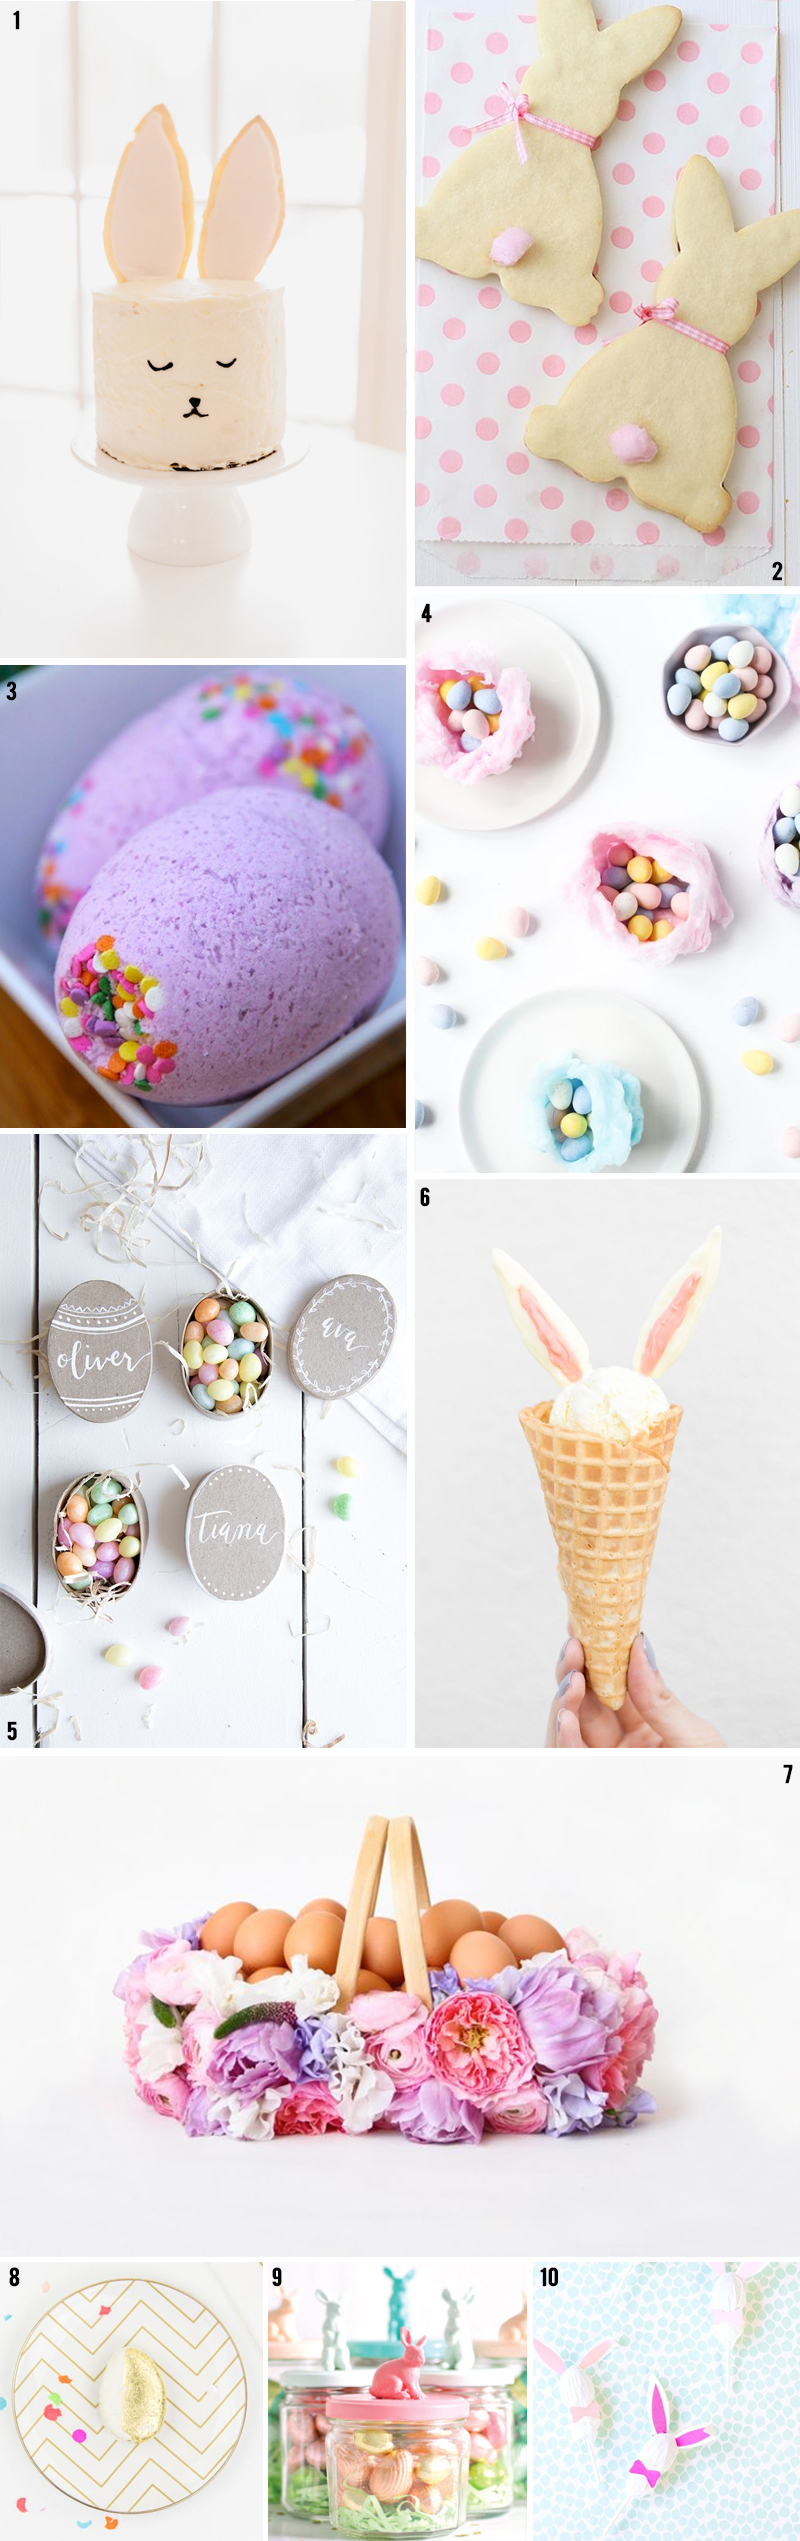 10 great Easter themed DIYs from around the Internet!